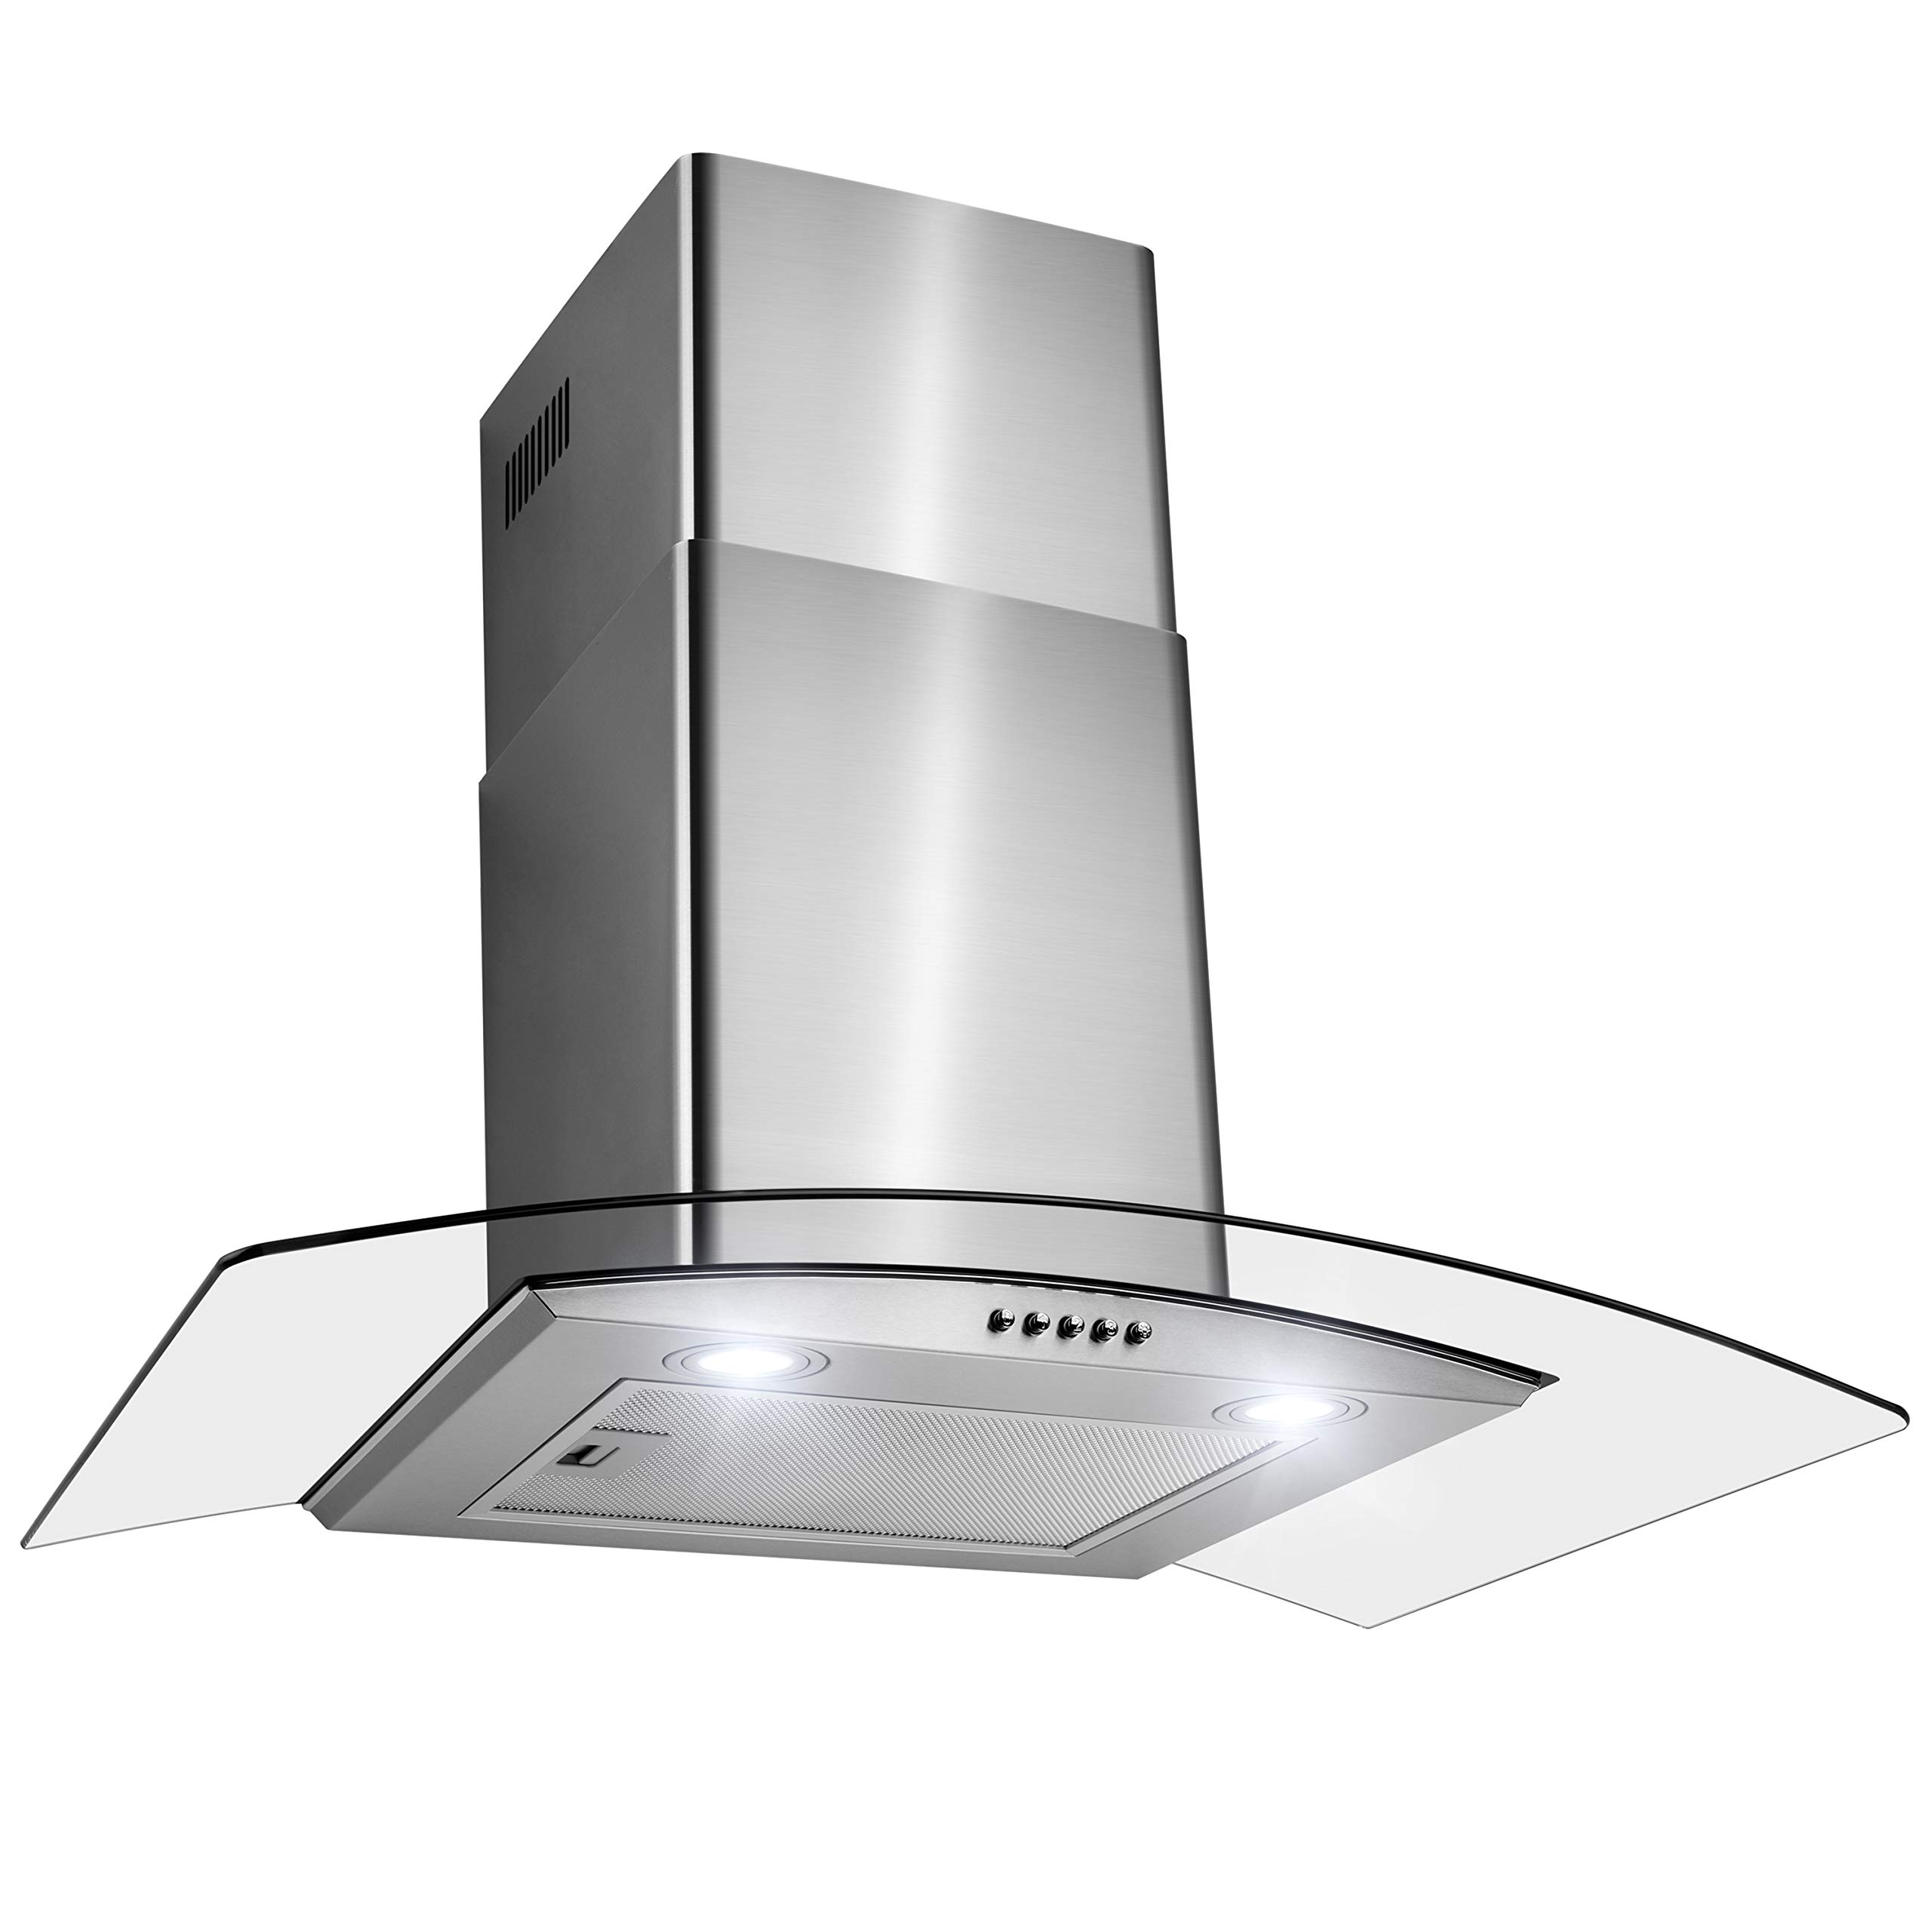 FIREBIRD 30'' Wall Mount Stainless Steel Tempered Glass Wall Mount Powerful Push Button Control Kitchen Vent Fan Range Hood